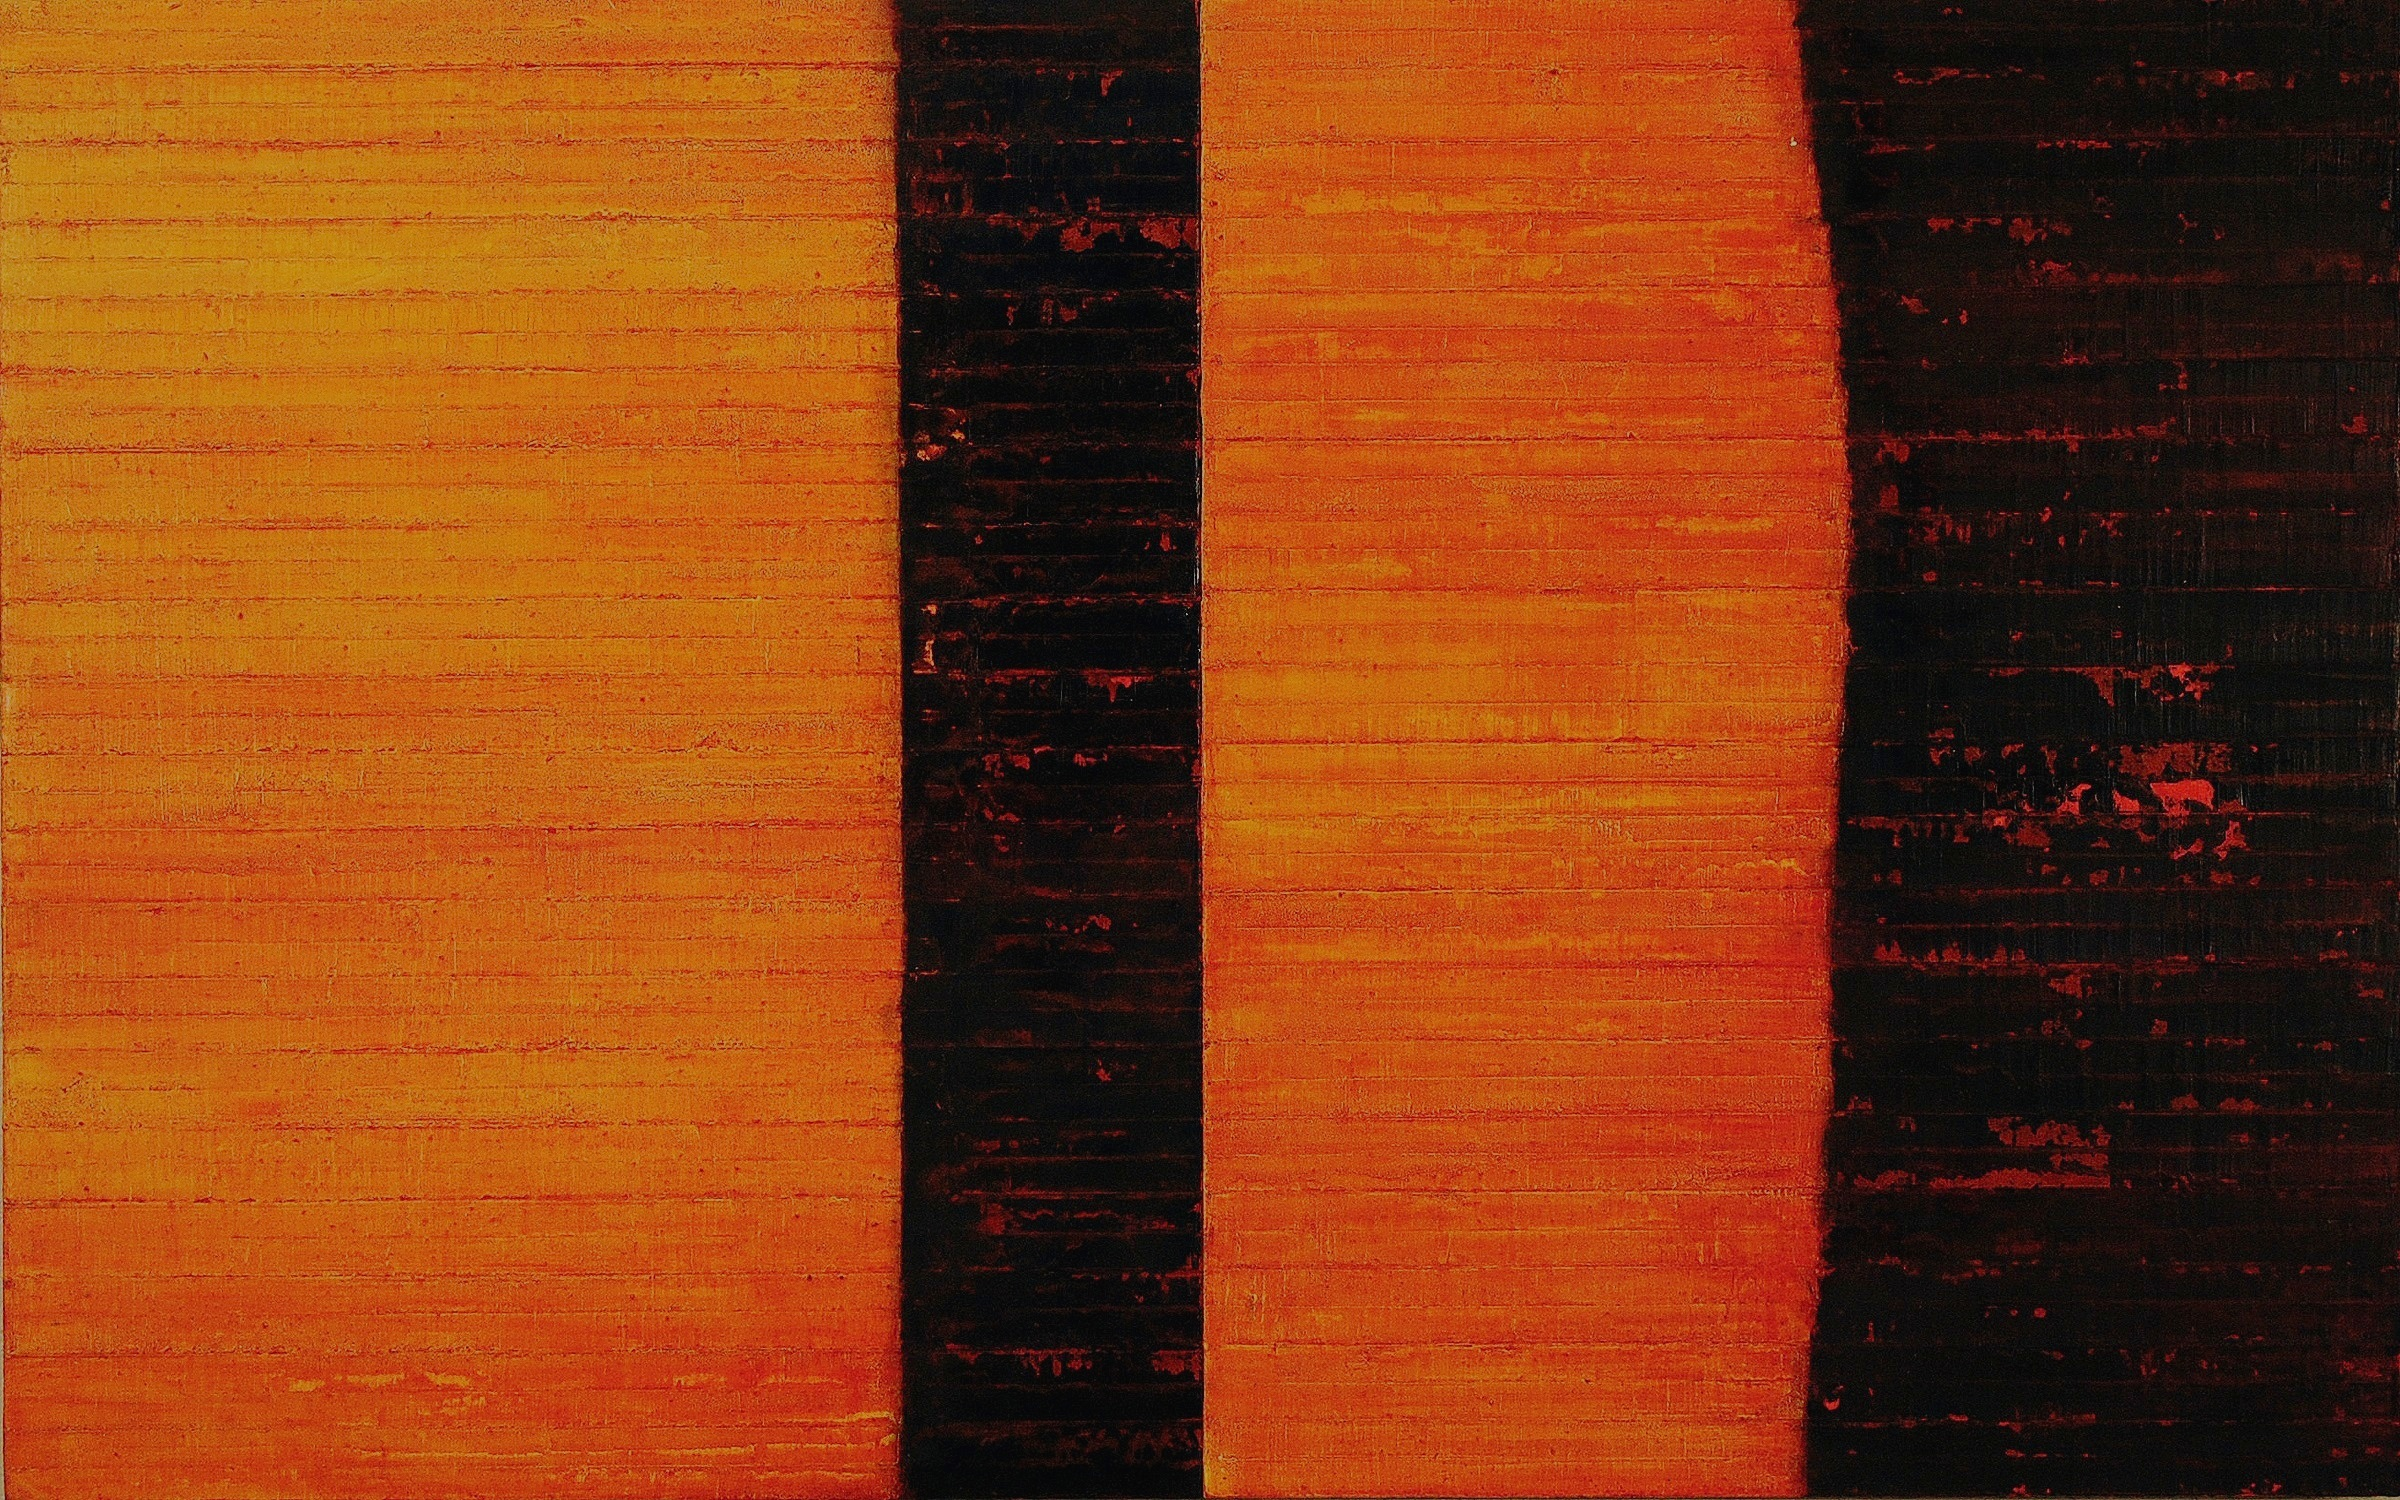 Linea Terminale: 12.10, 2010, Oil on linen over panels, 20 x 36 inches.